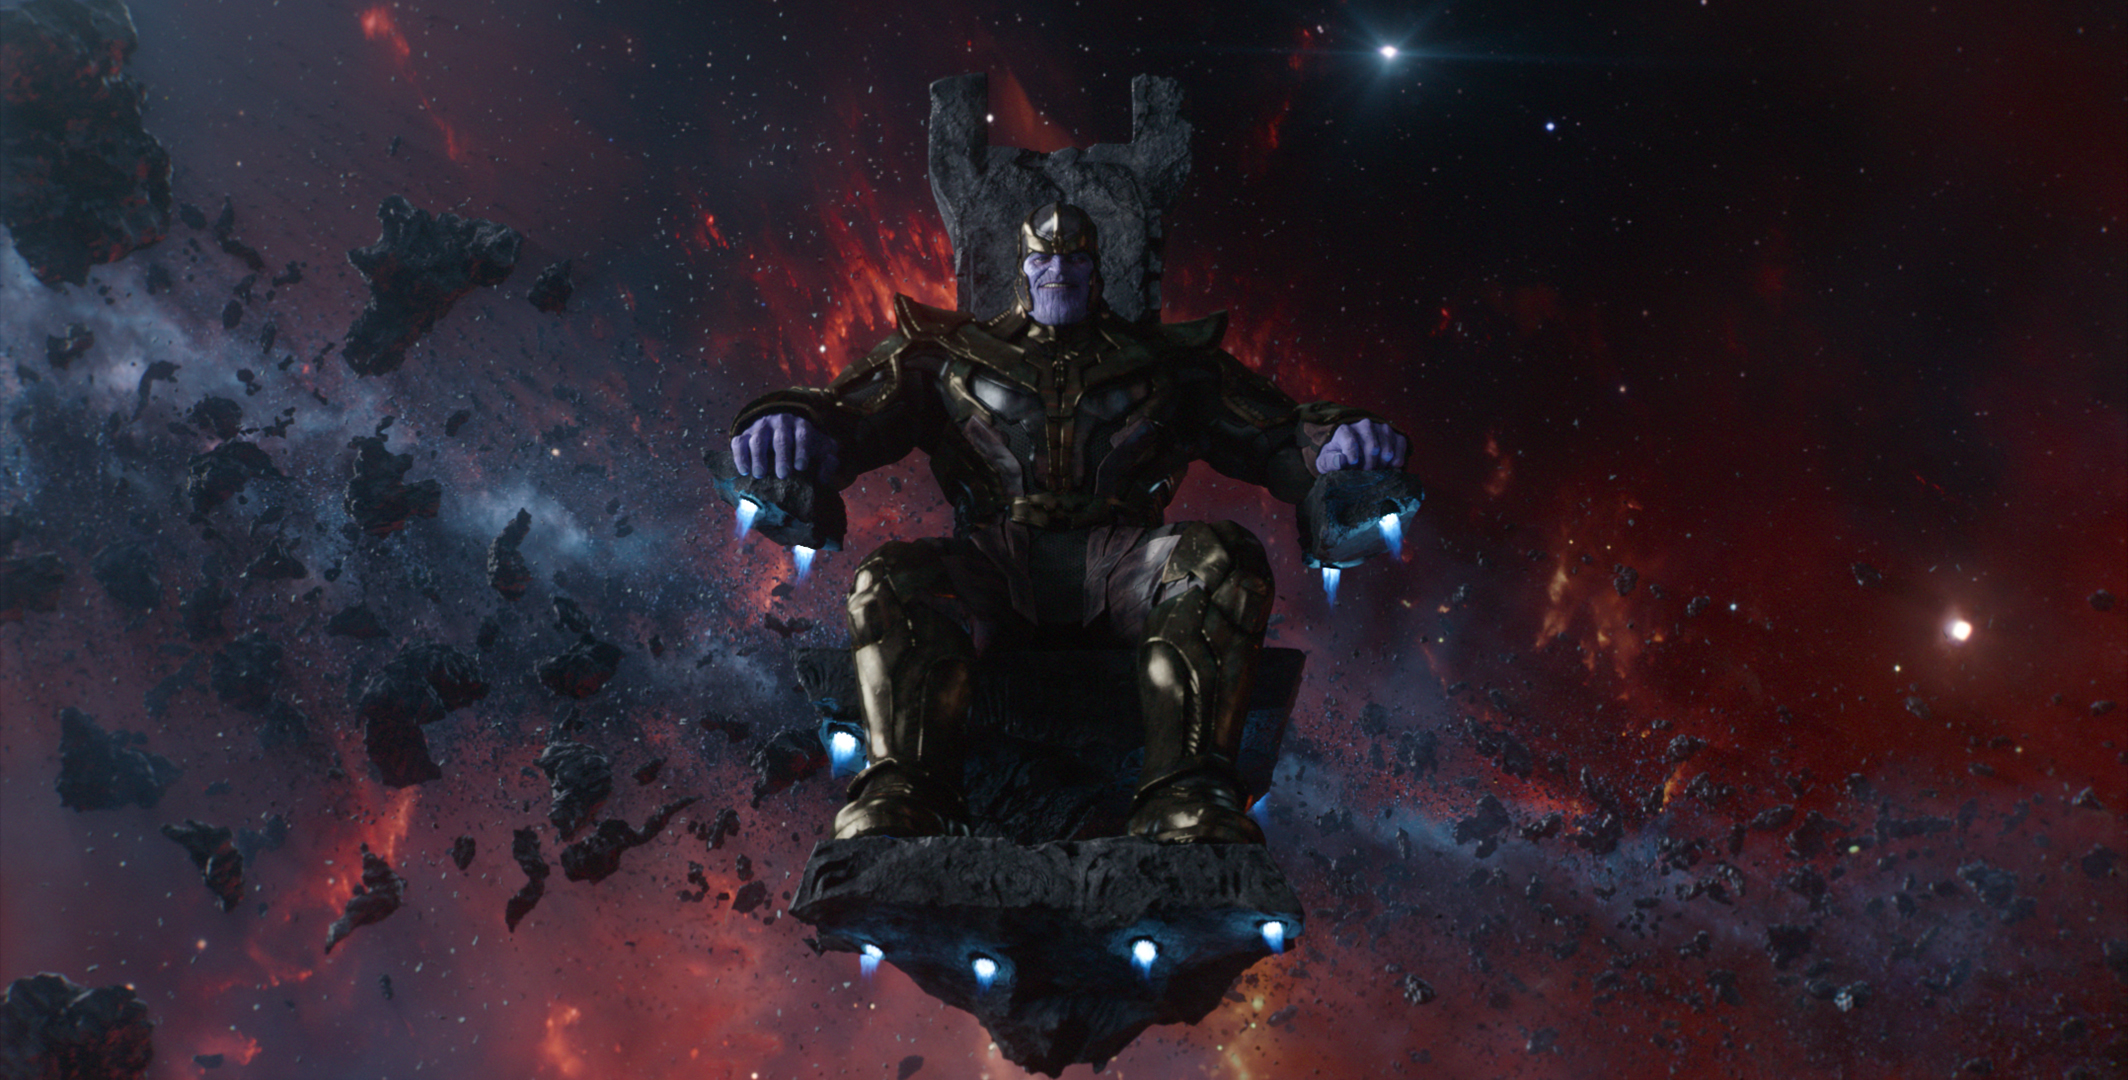 Images of Thanos | 2128x1080